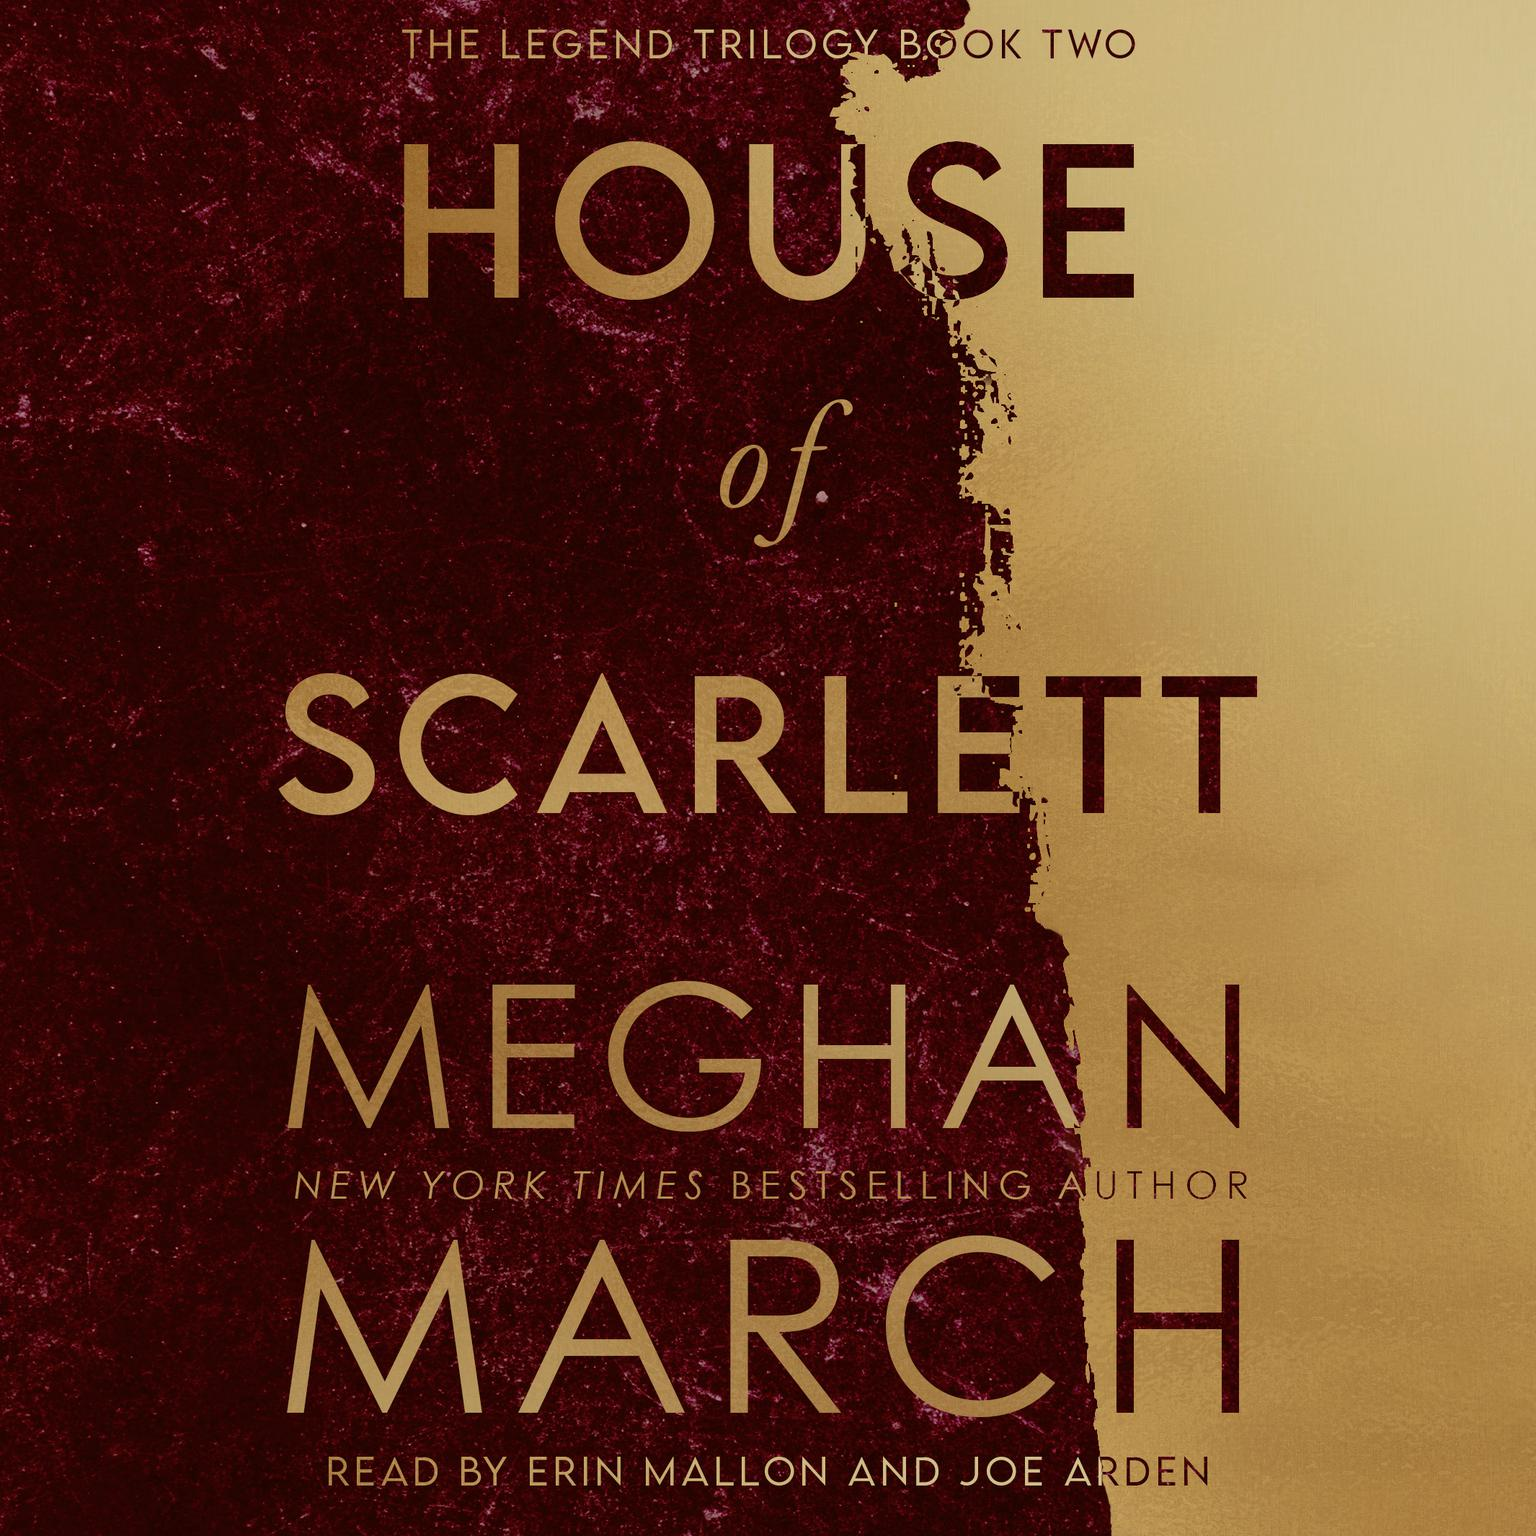 House of Scarlett: Legend Trilogy, Book 2 Audiobook, by Meghan March